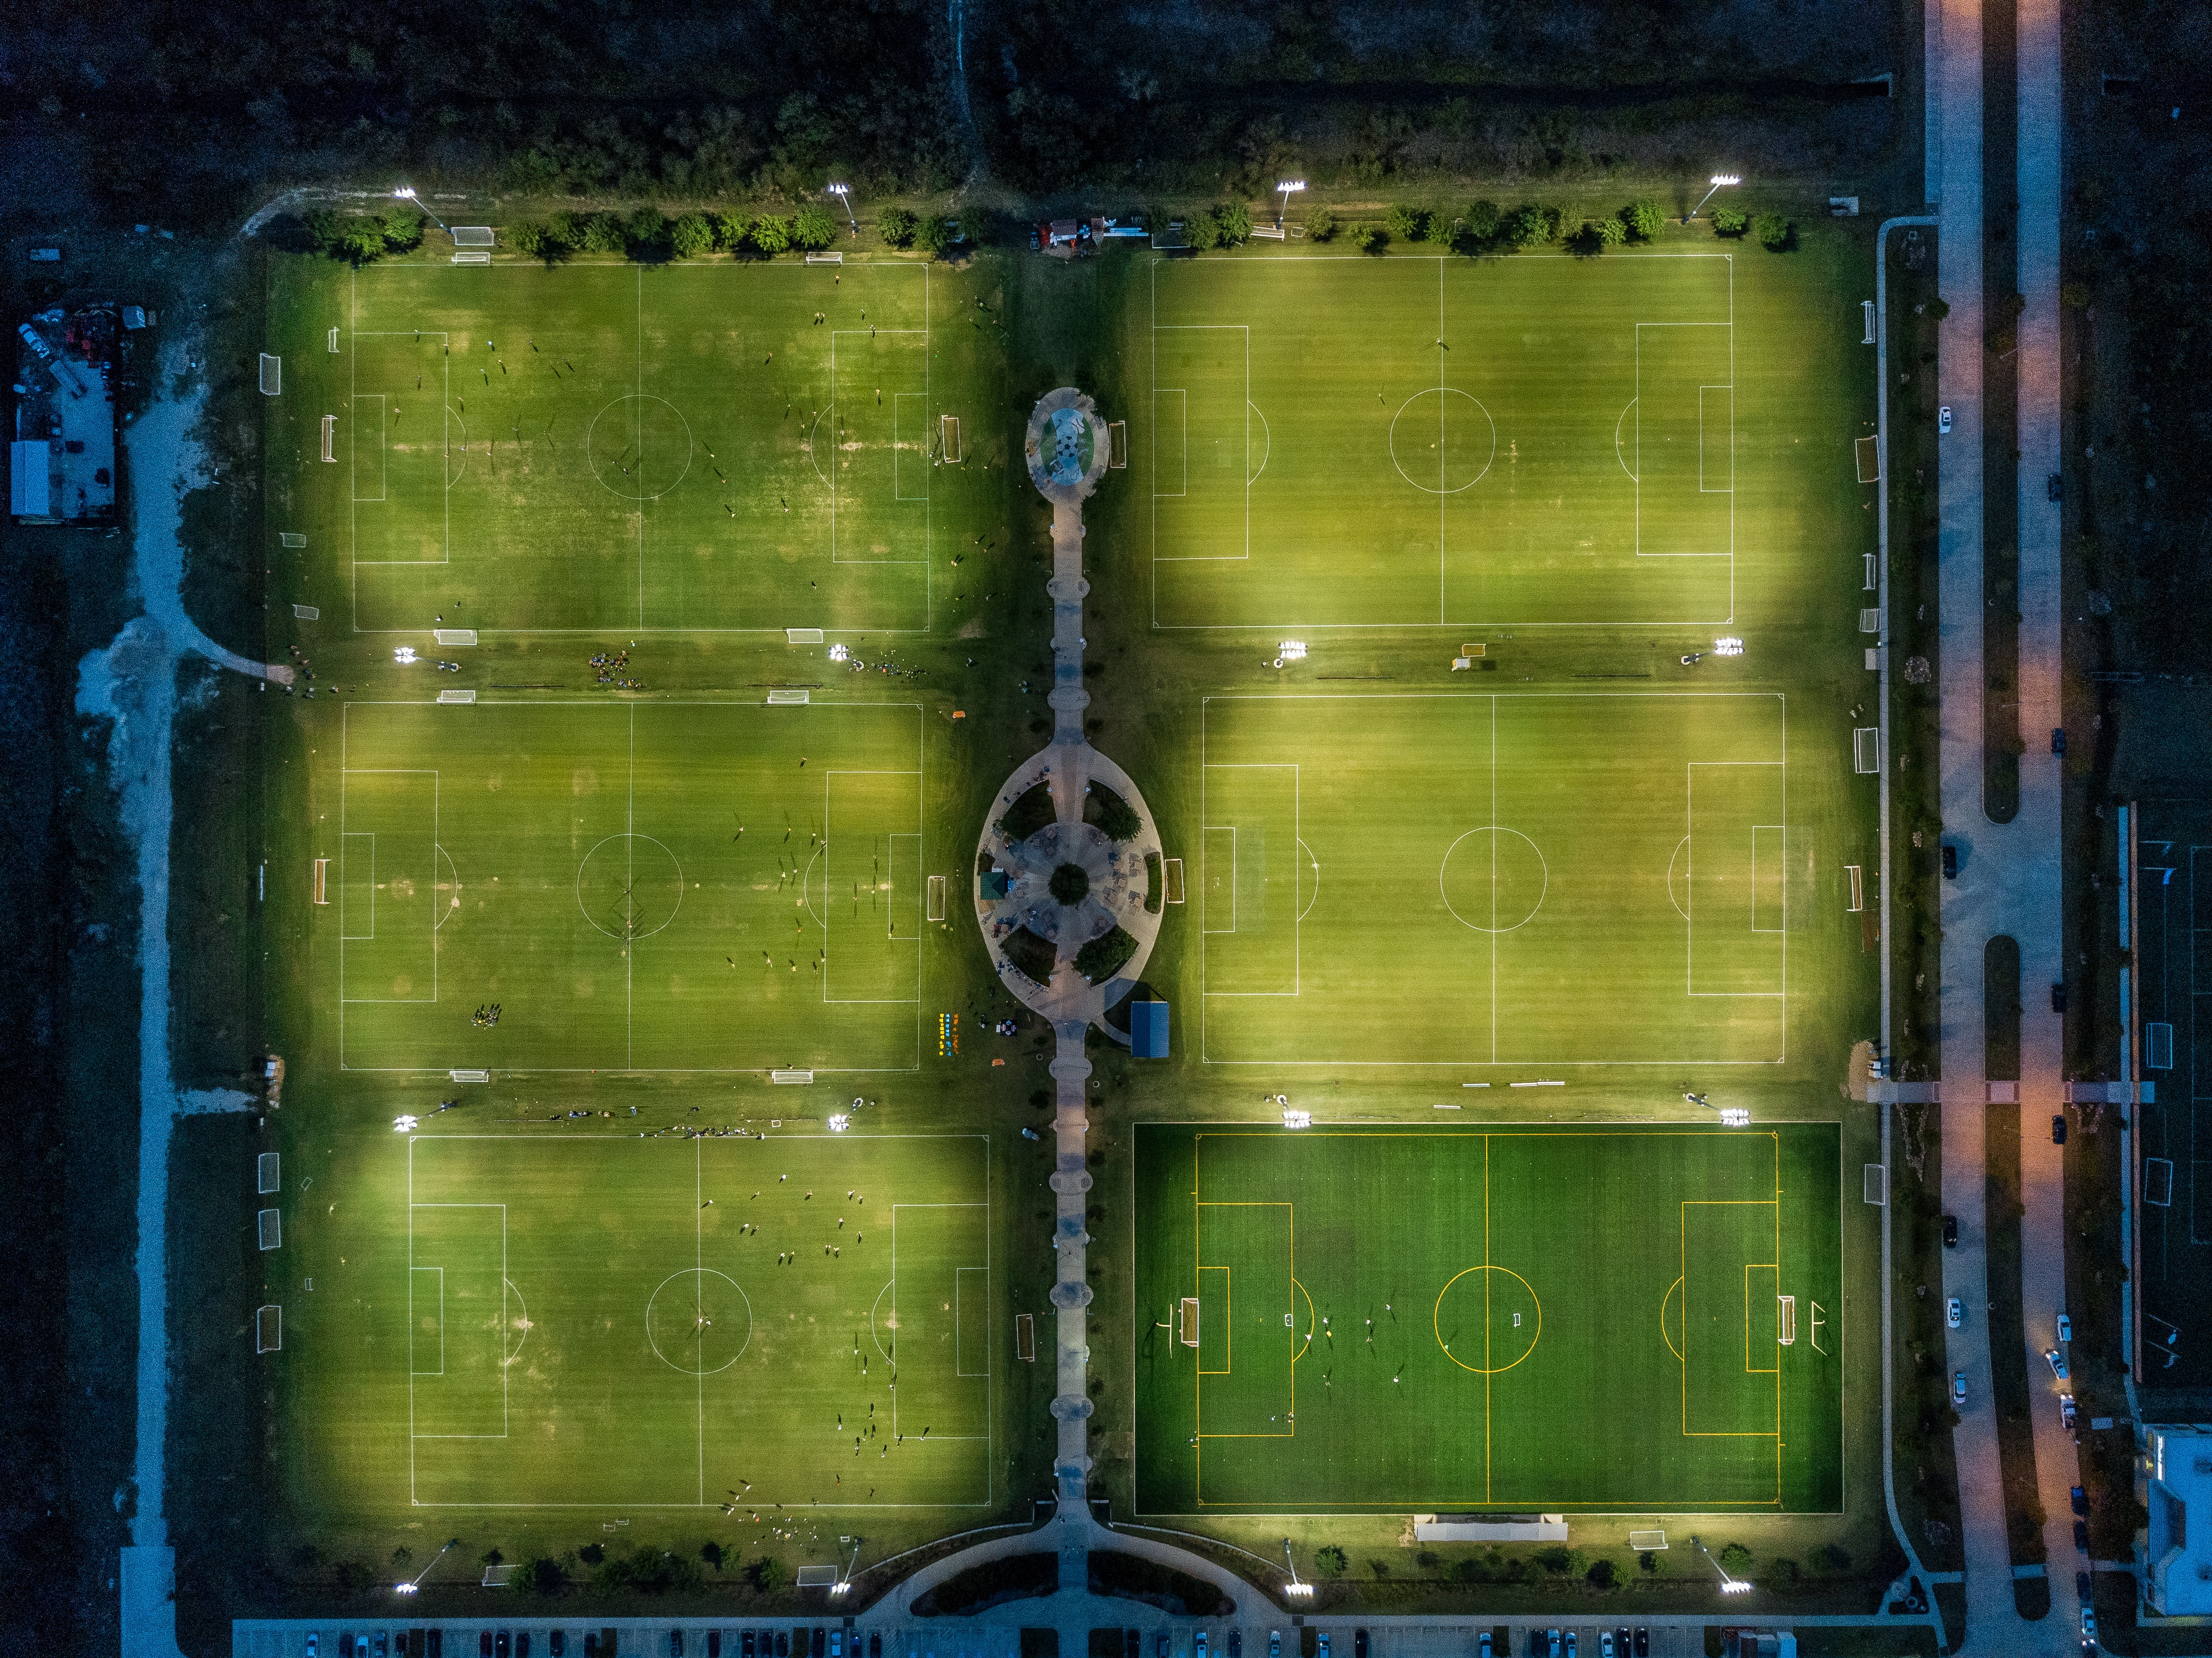 aerial photography of soccer field